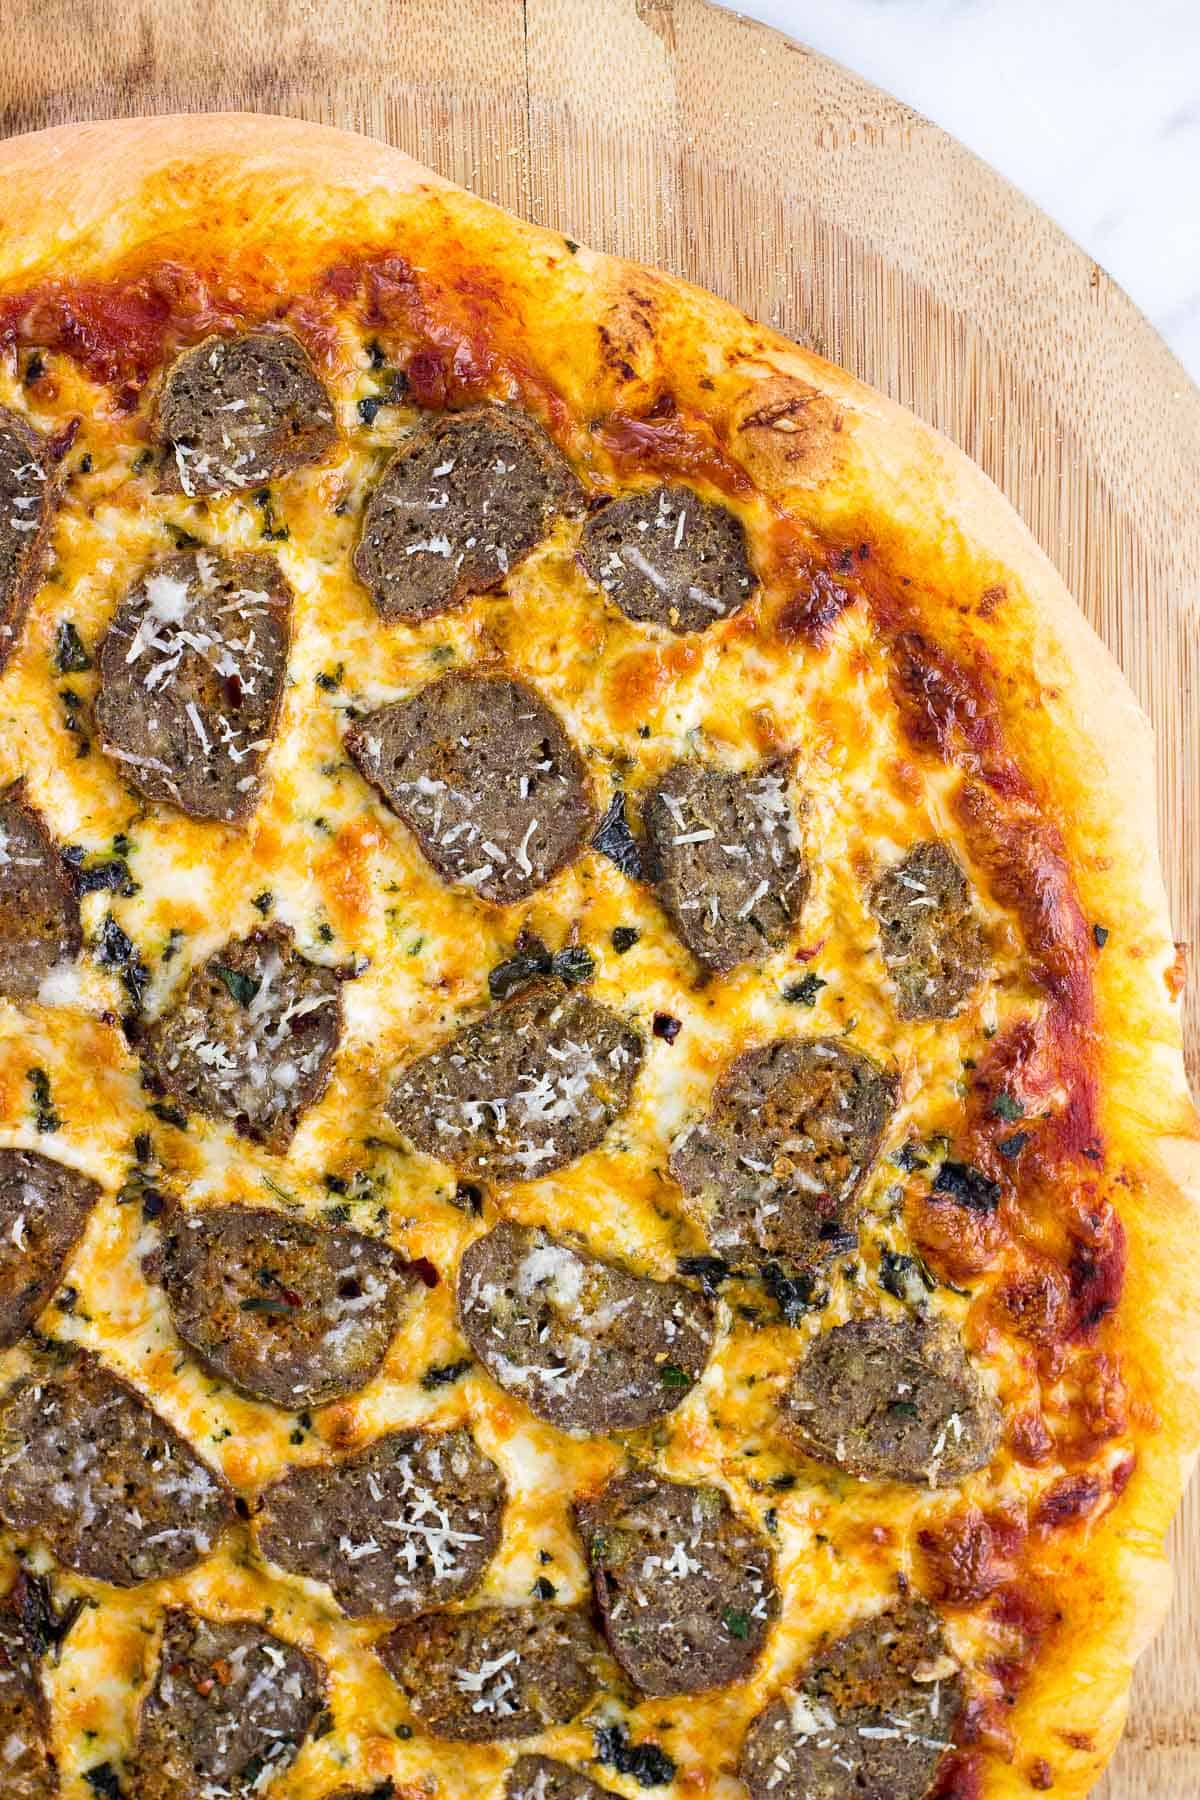 A cooked meatball pizza on a wooden peel.